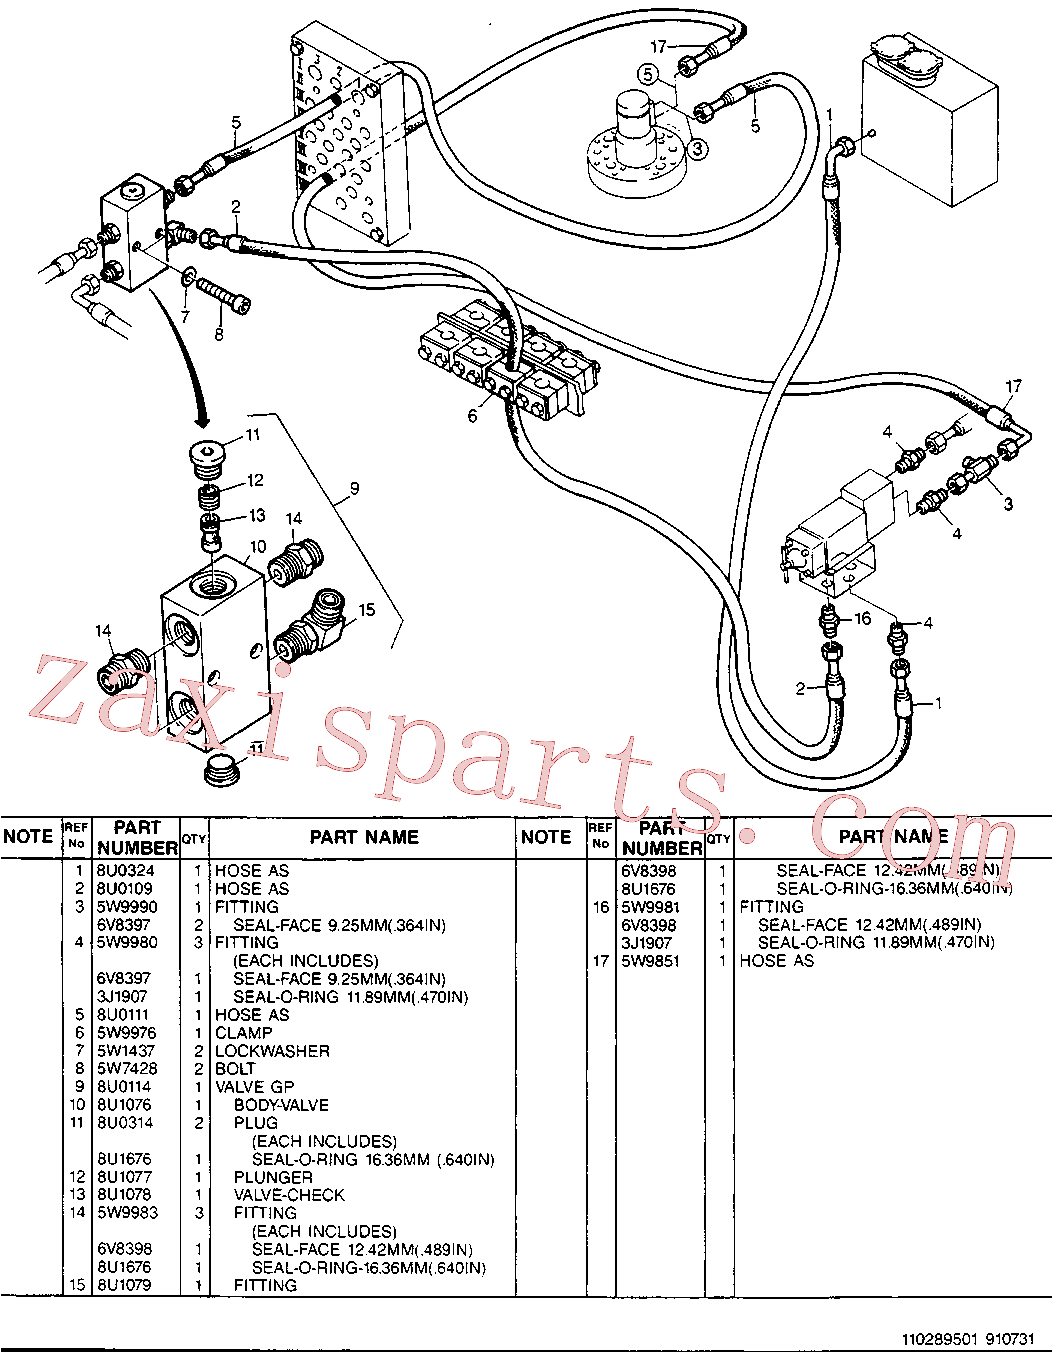 CAT 5W-4981 for 213B Excavator(EXC) hydraulic system 8U-4338 Assembly